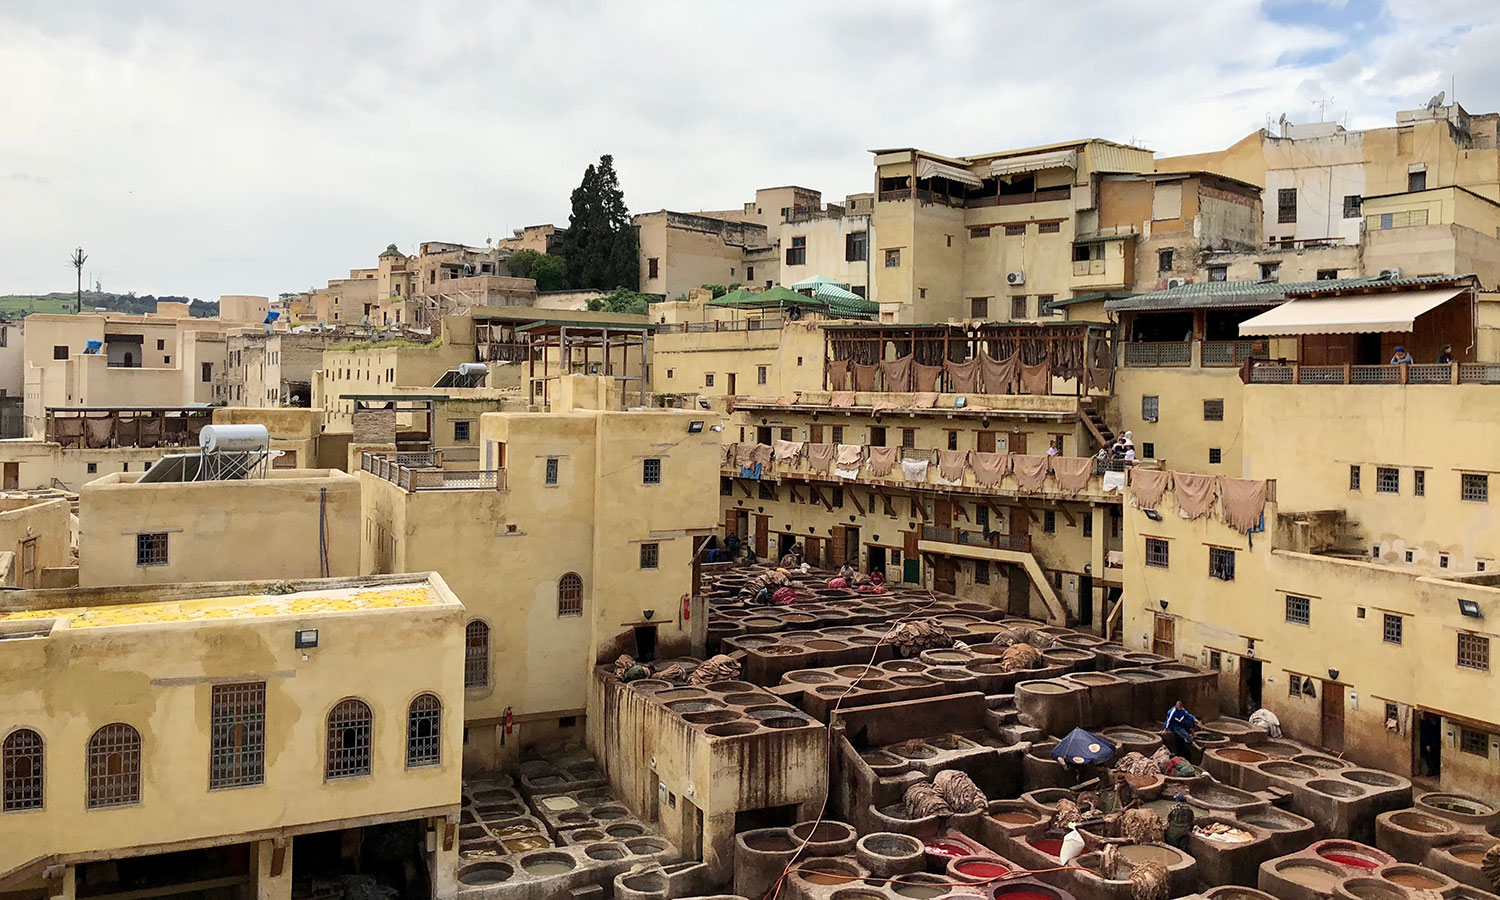 Arch.-3rd-place.-TIED.-Solomon.-39.-Arch_Fes,-Morocco.Chouara-tannery-in-Africa's-oldest-Medina